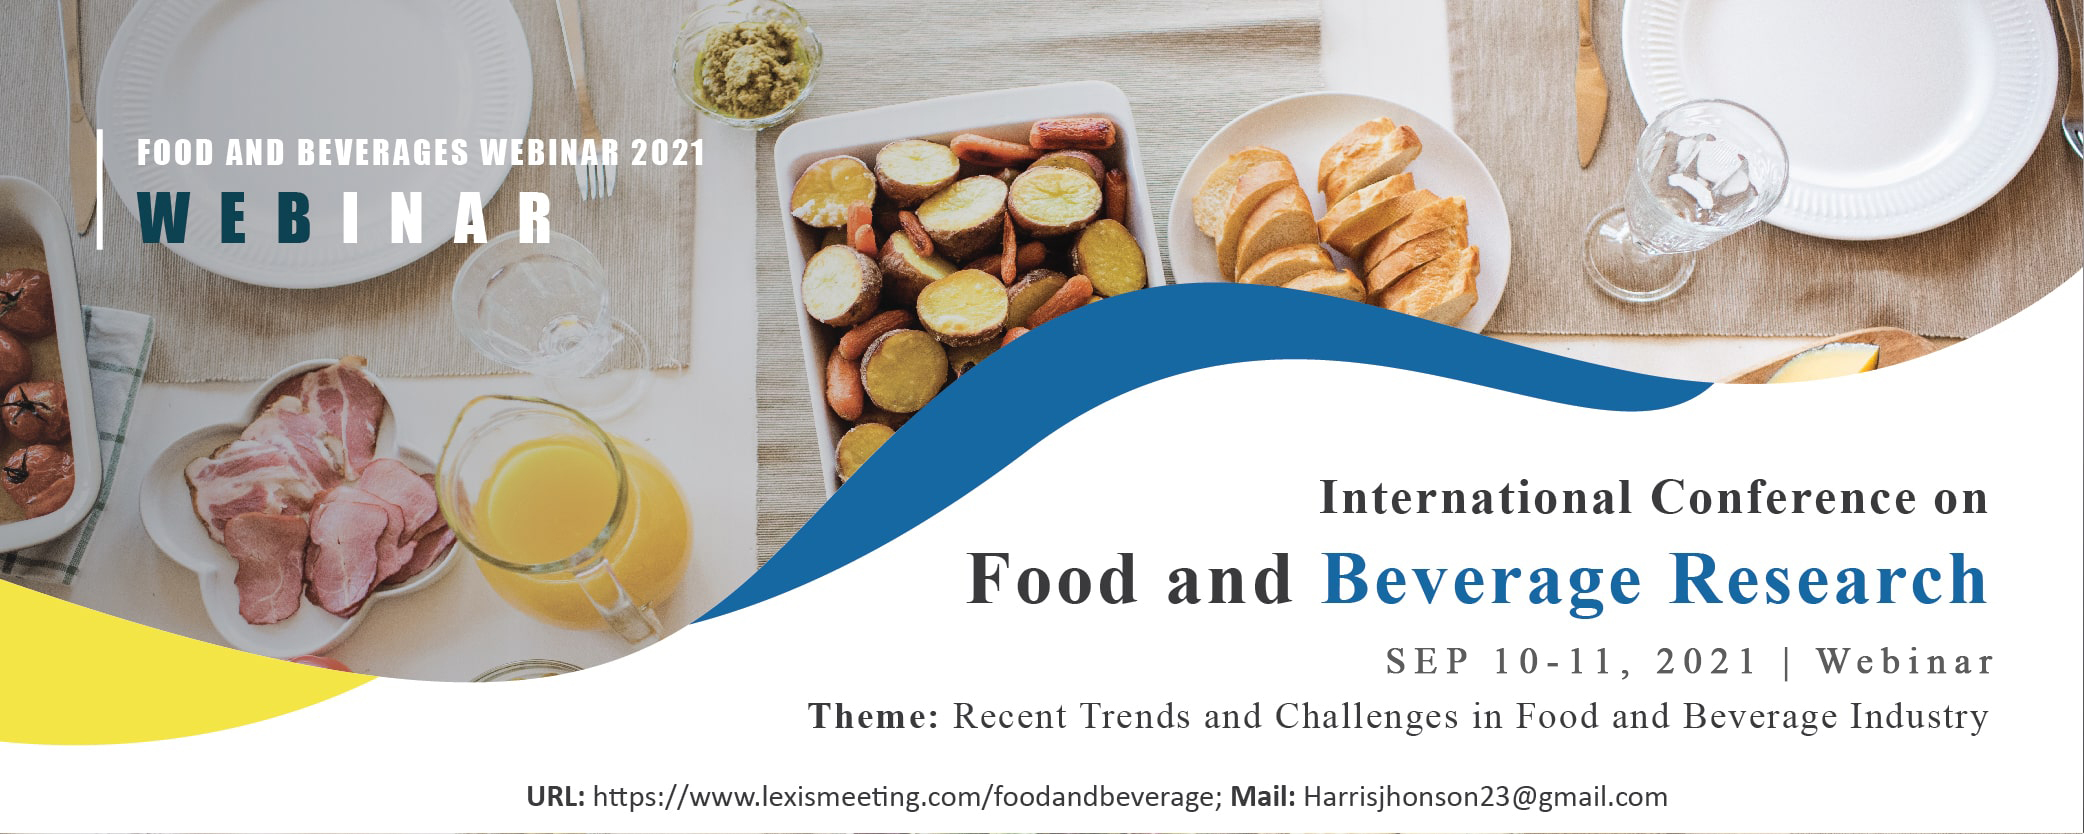 International Conference on Food and Beverage Research